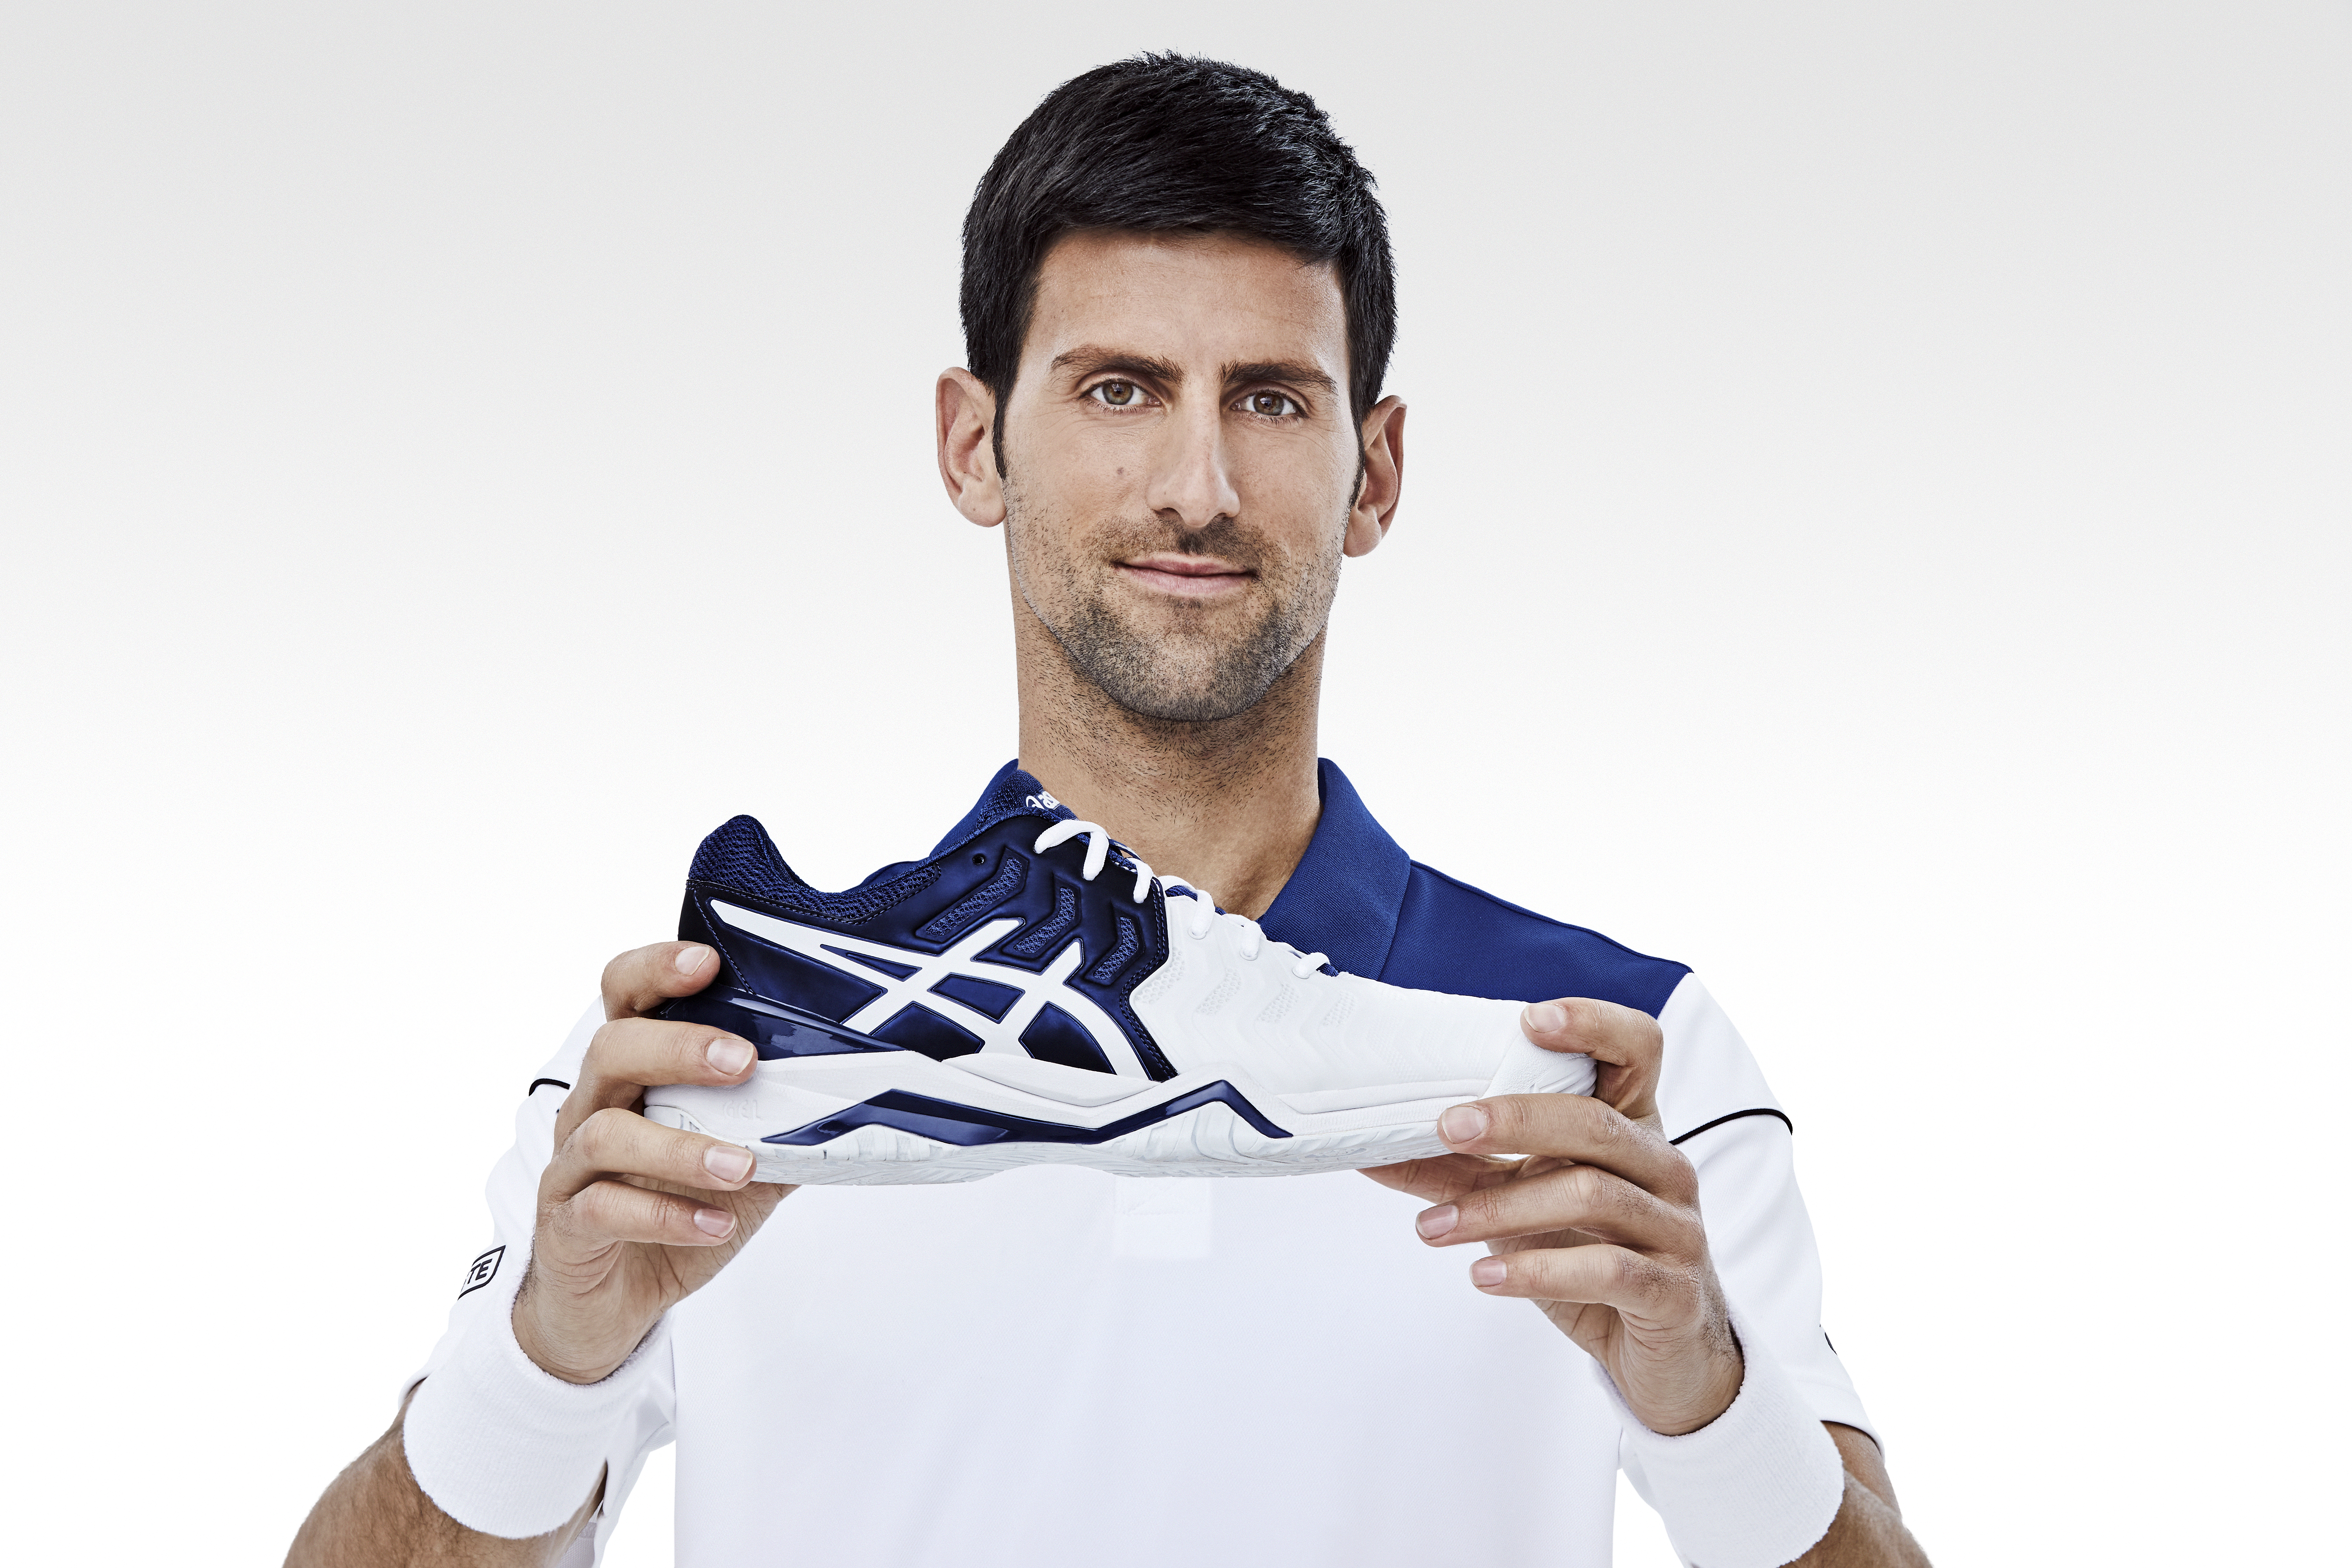 Asics And Novak Djokovic Double Up For An Ace Launch New Global Tennis Footwear Ambassador Partners To Create Exclusive Gel Resolution Novak Asics Global The Official Corporate Website For Asics And